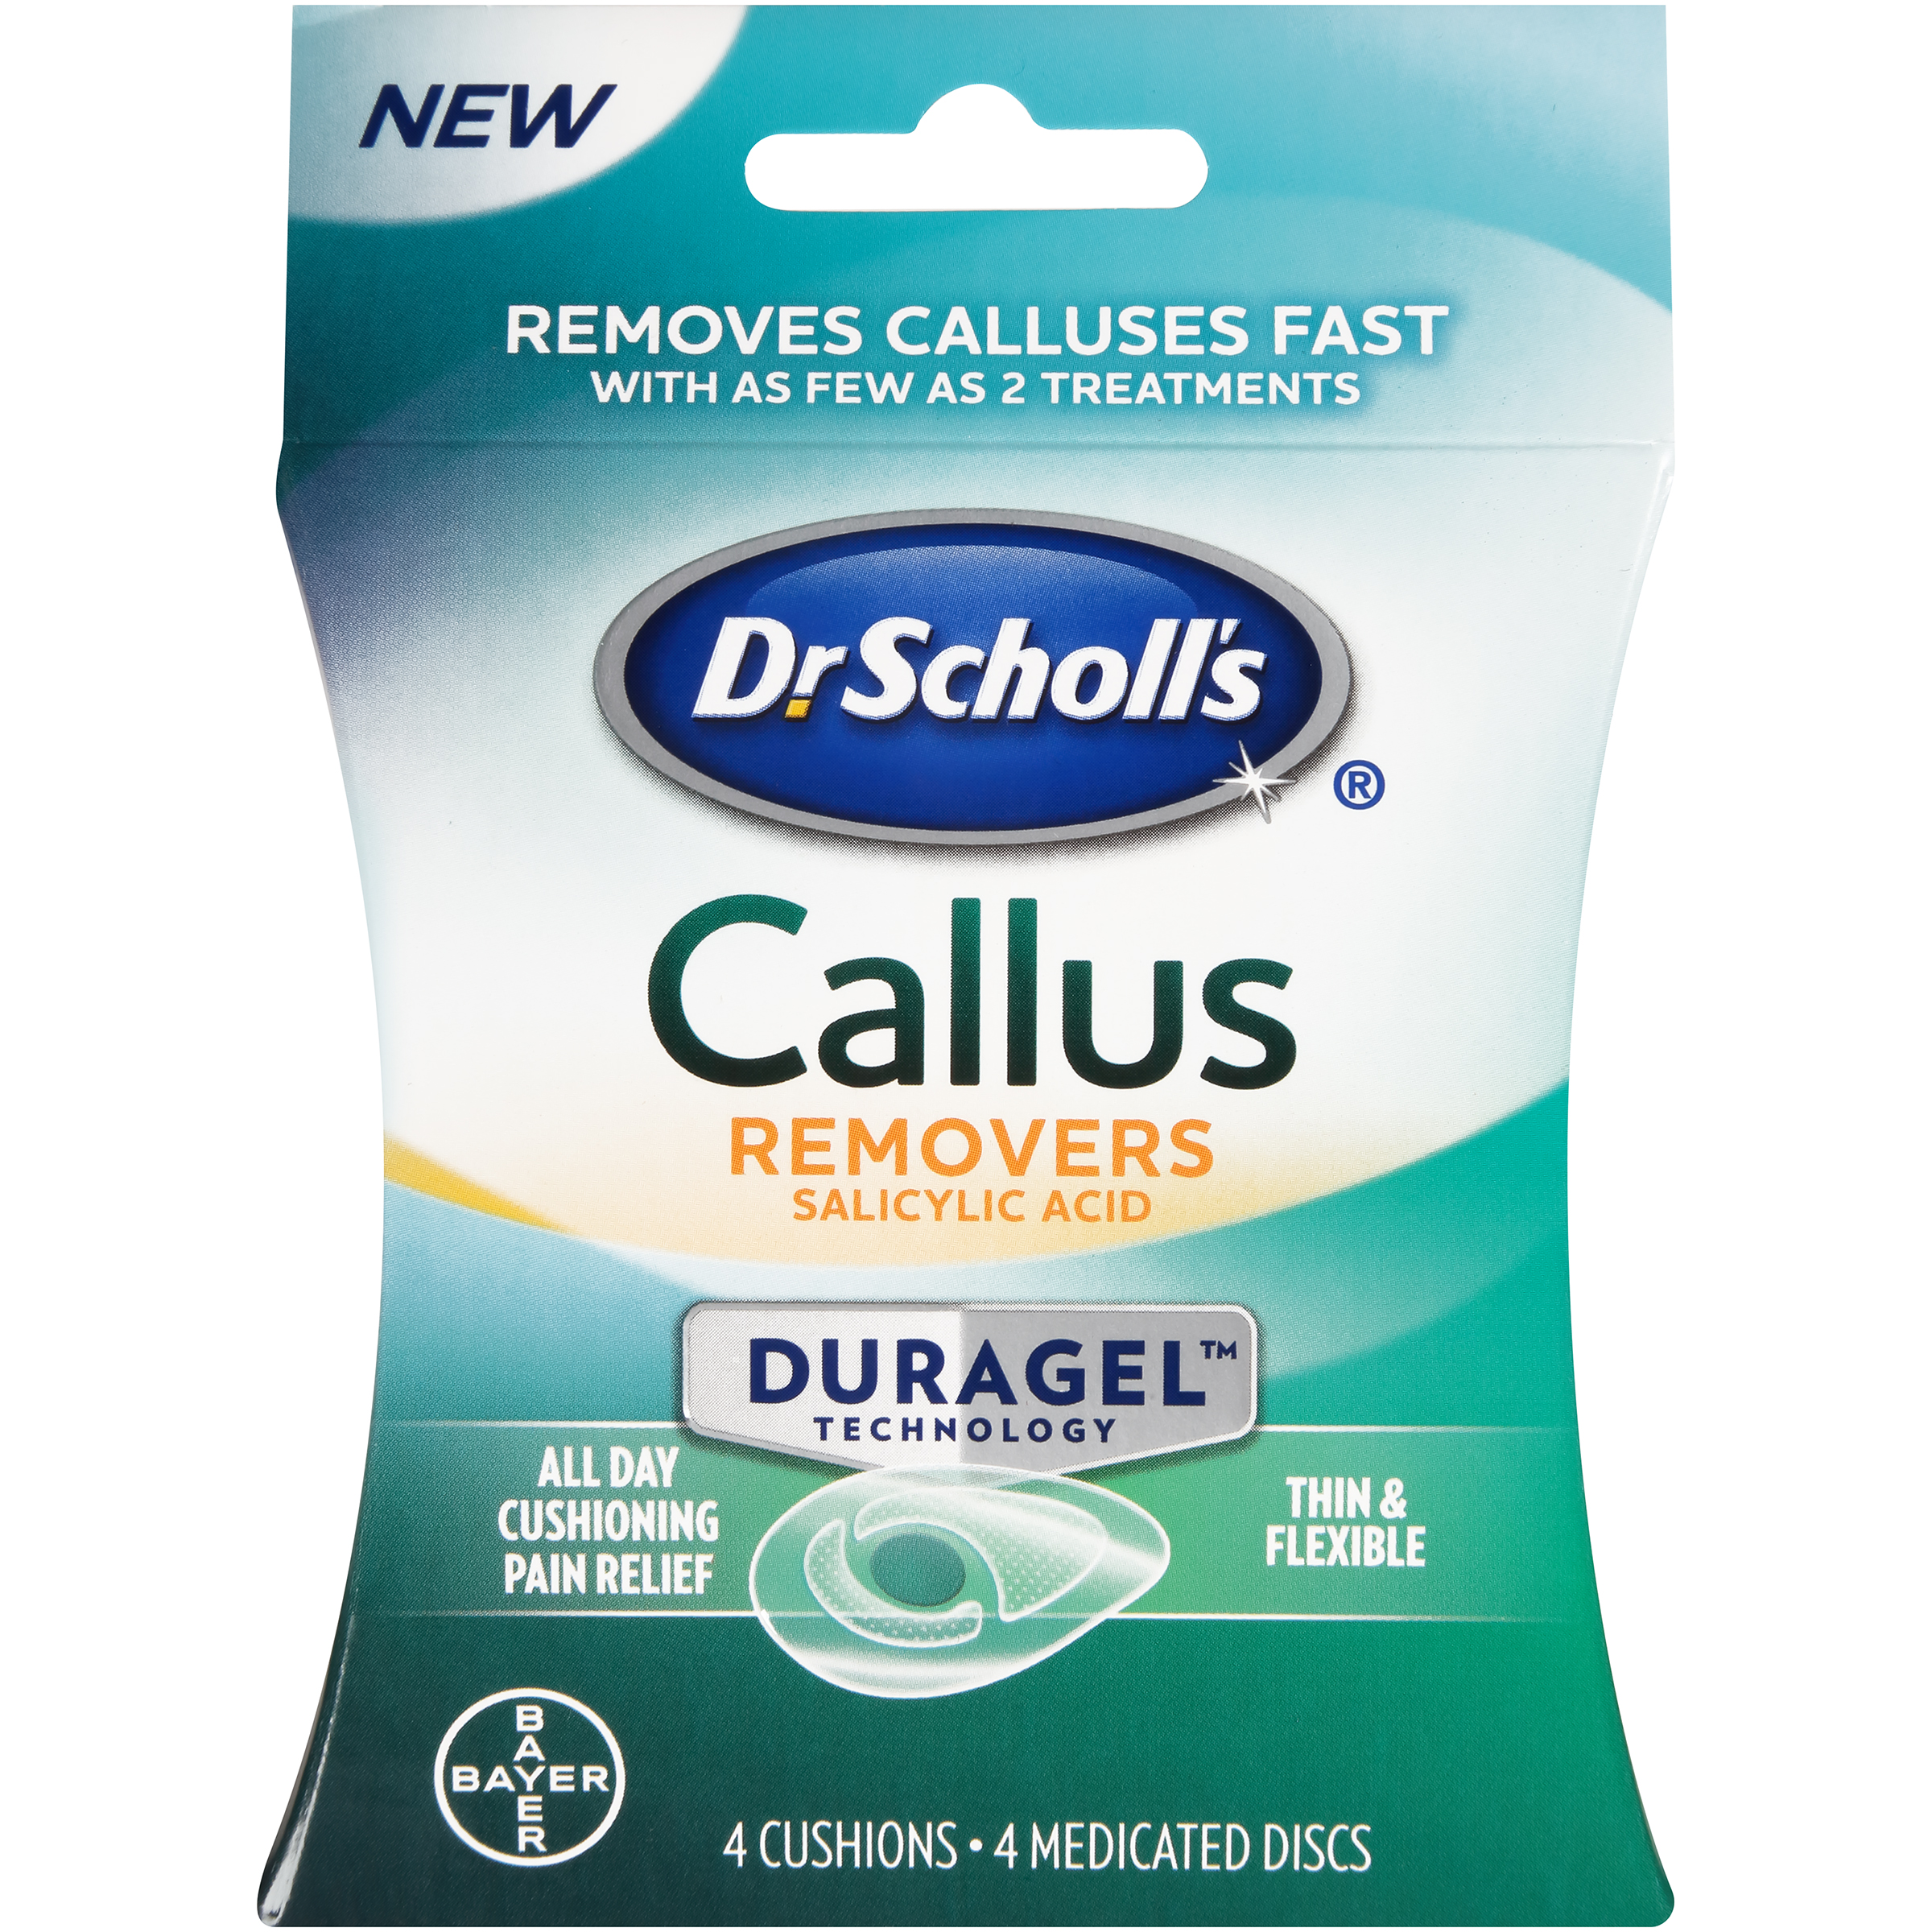 Dr. Scholl's Callus Removers with Duragel Technology, 5 ct